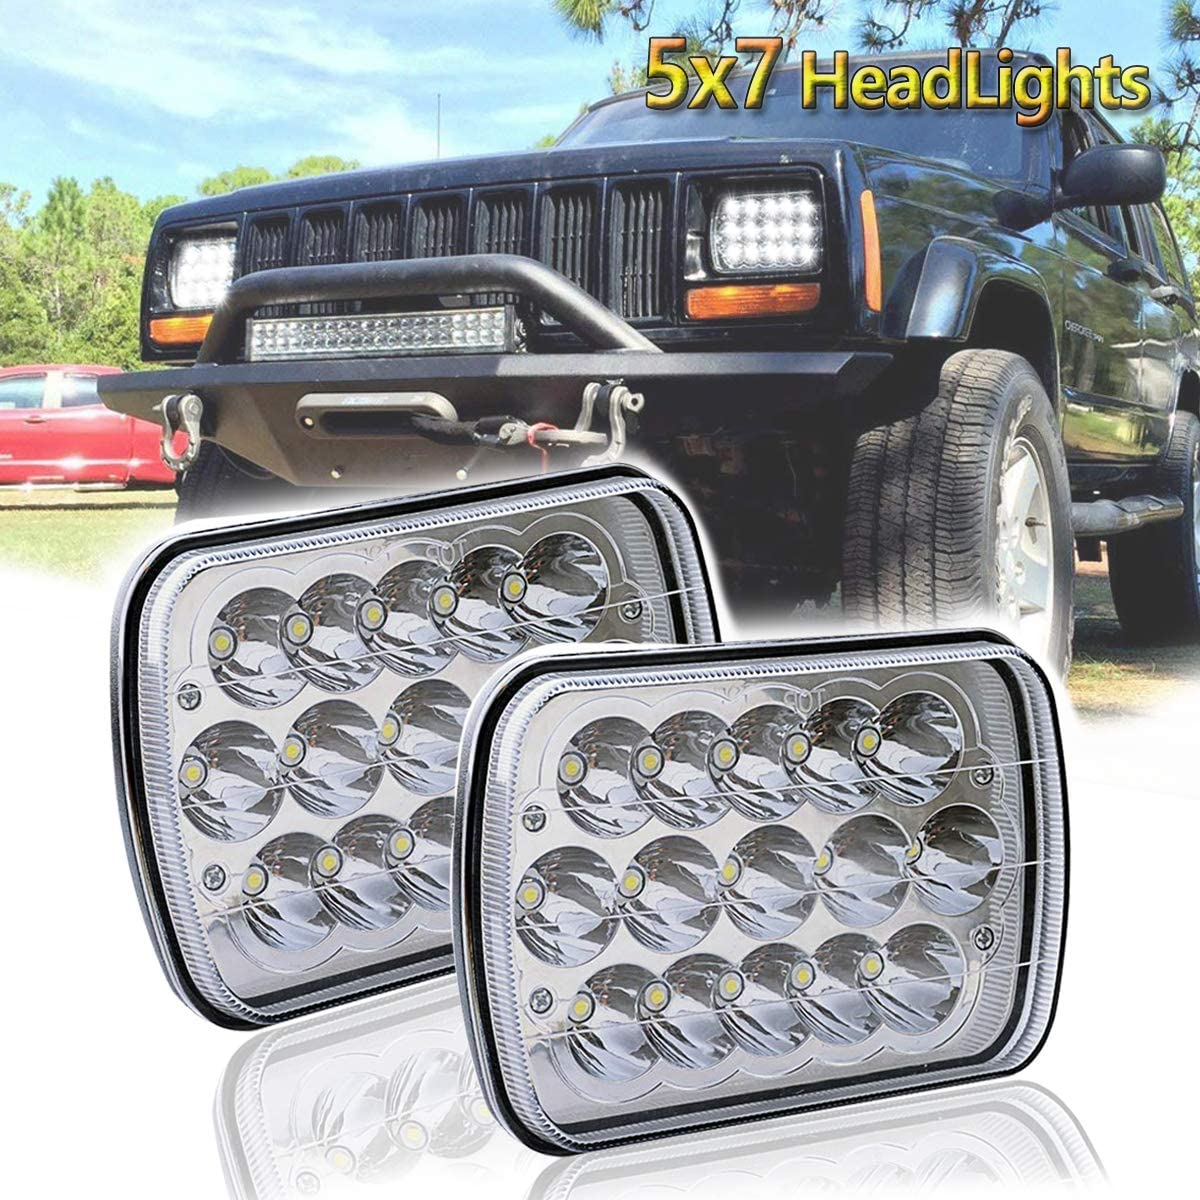 LEDMIRCY 4x6 Inch LED Headlights Dot Approved High Low Sealed Beam Rectangular LED Headlight 4PCS 45W LED Headlamp Replace with H4651 H4652 H4656 H4666 H6545 H4668 H4642